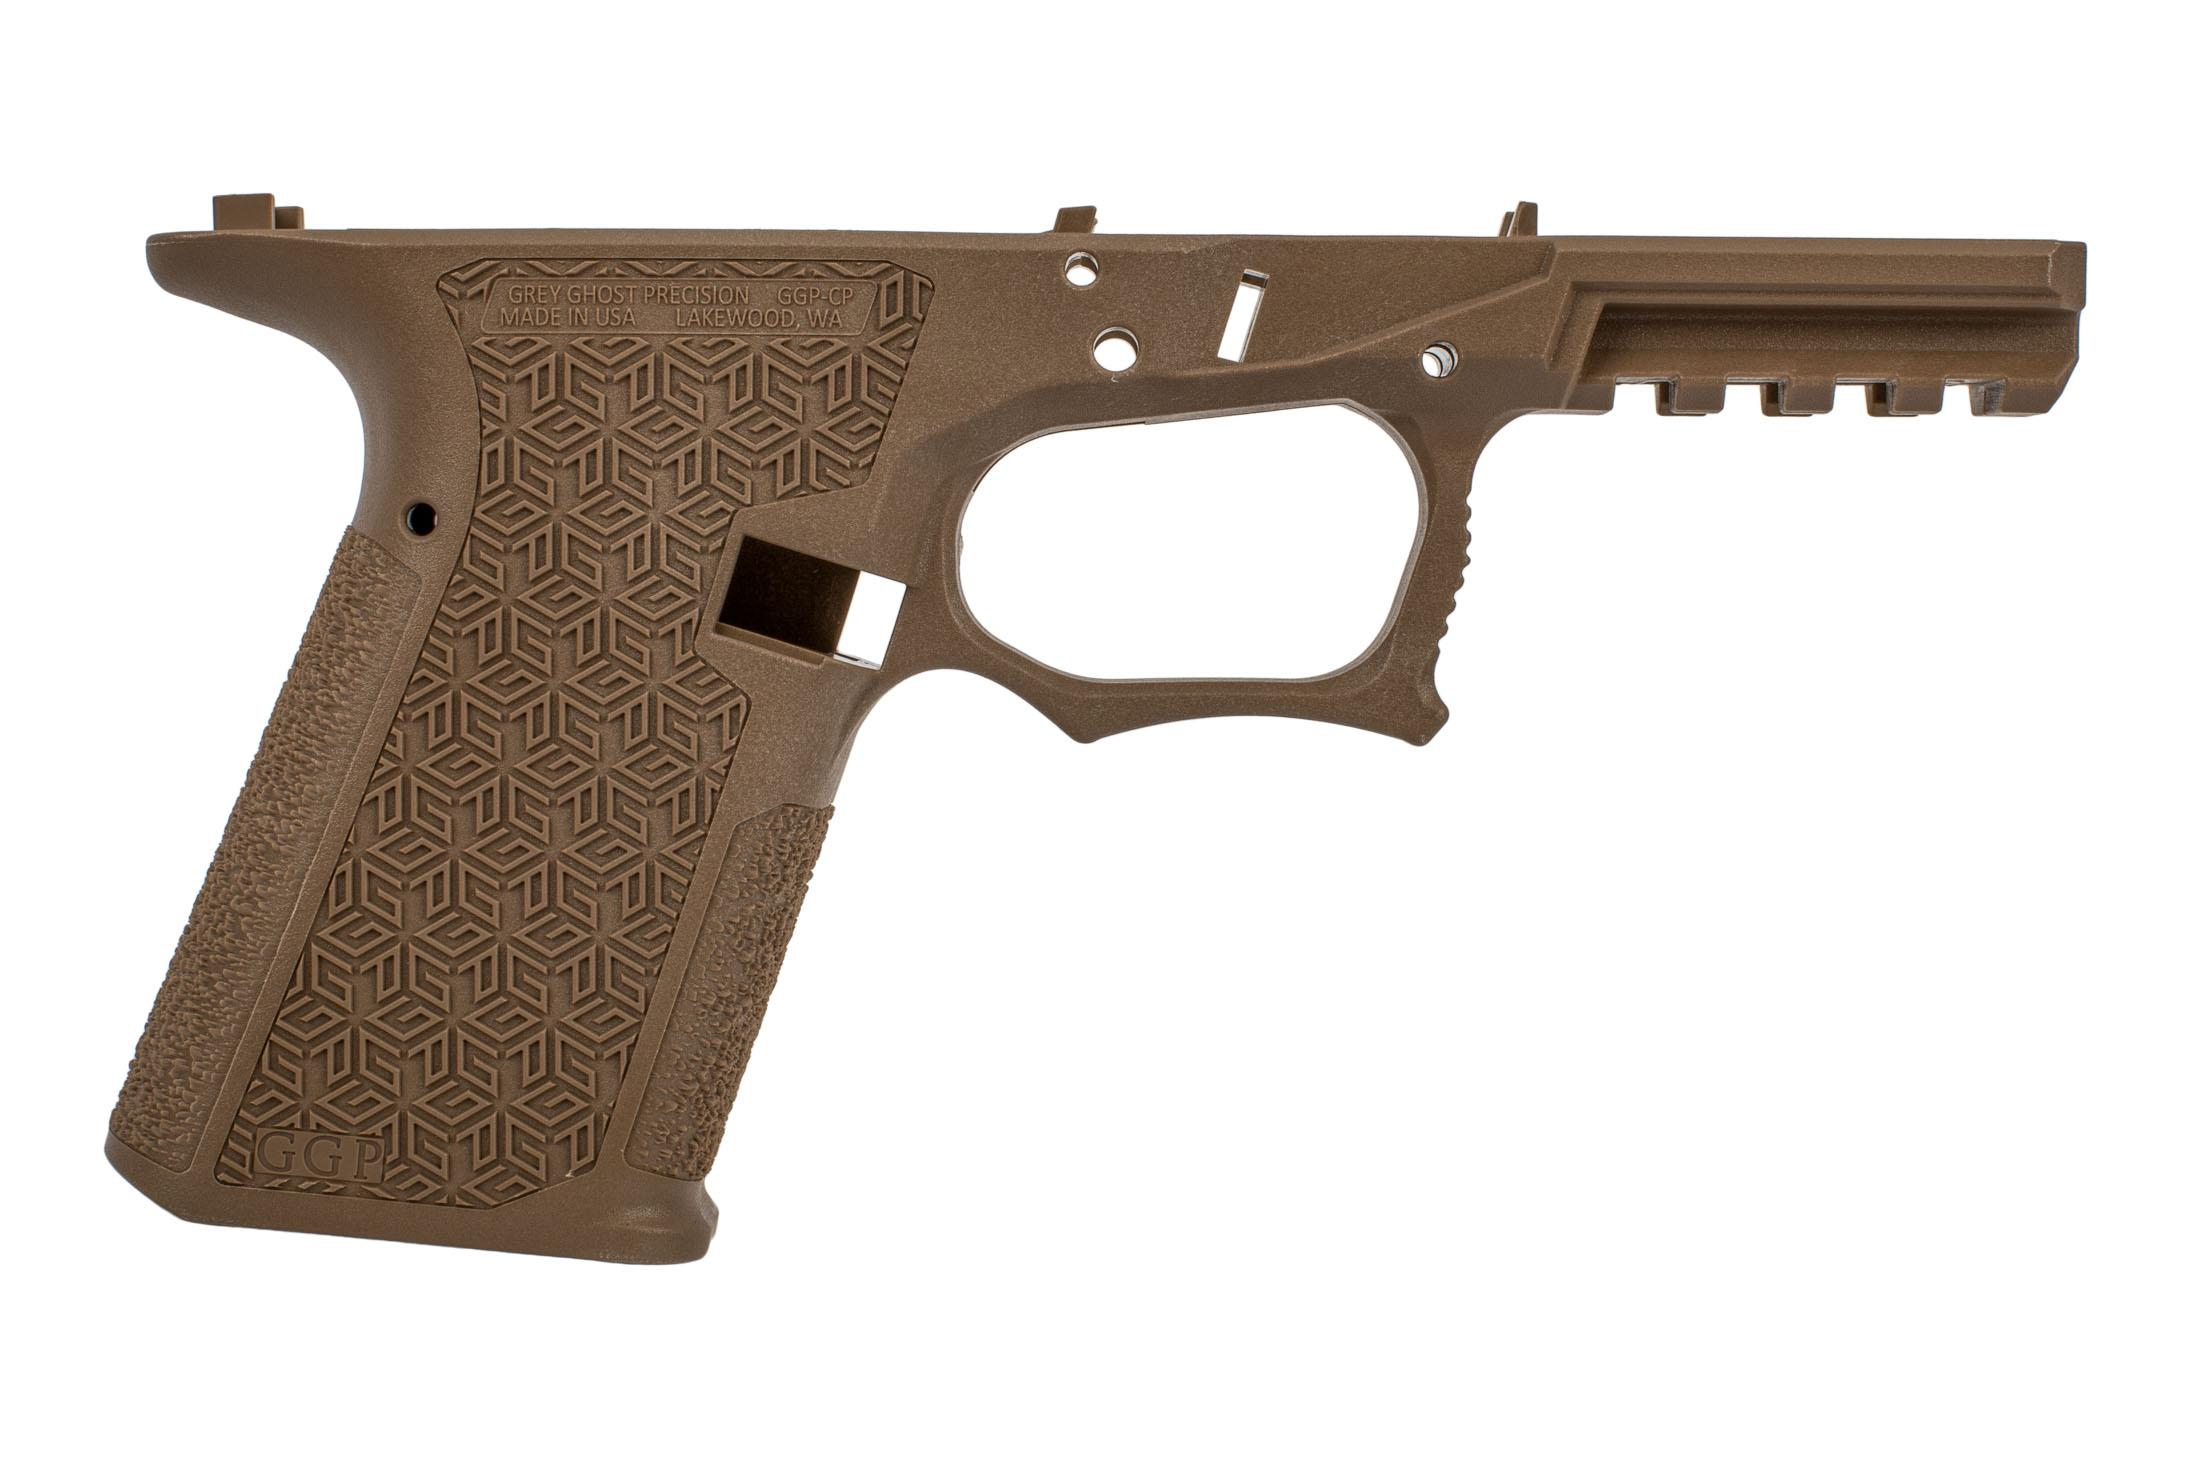 Grey Ghost Precision Compact Combat Pistol frame